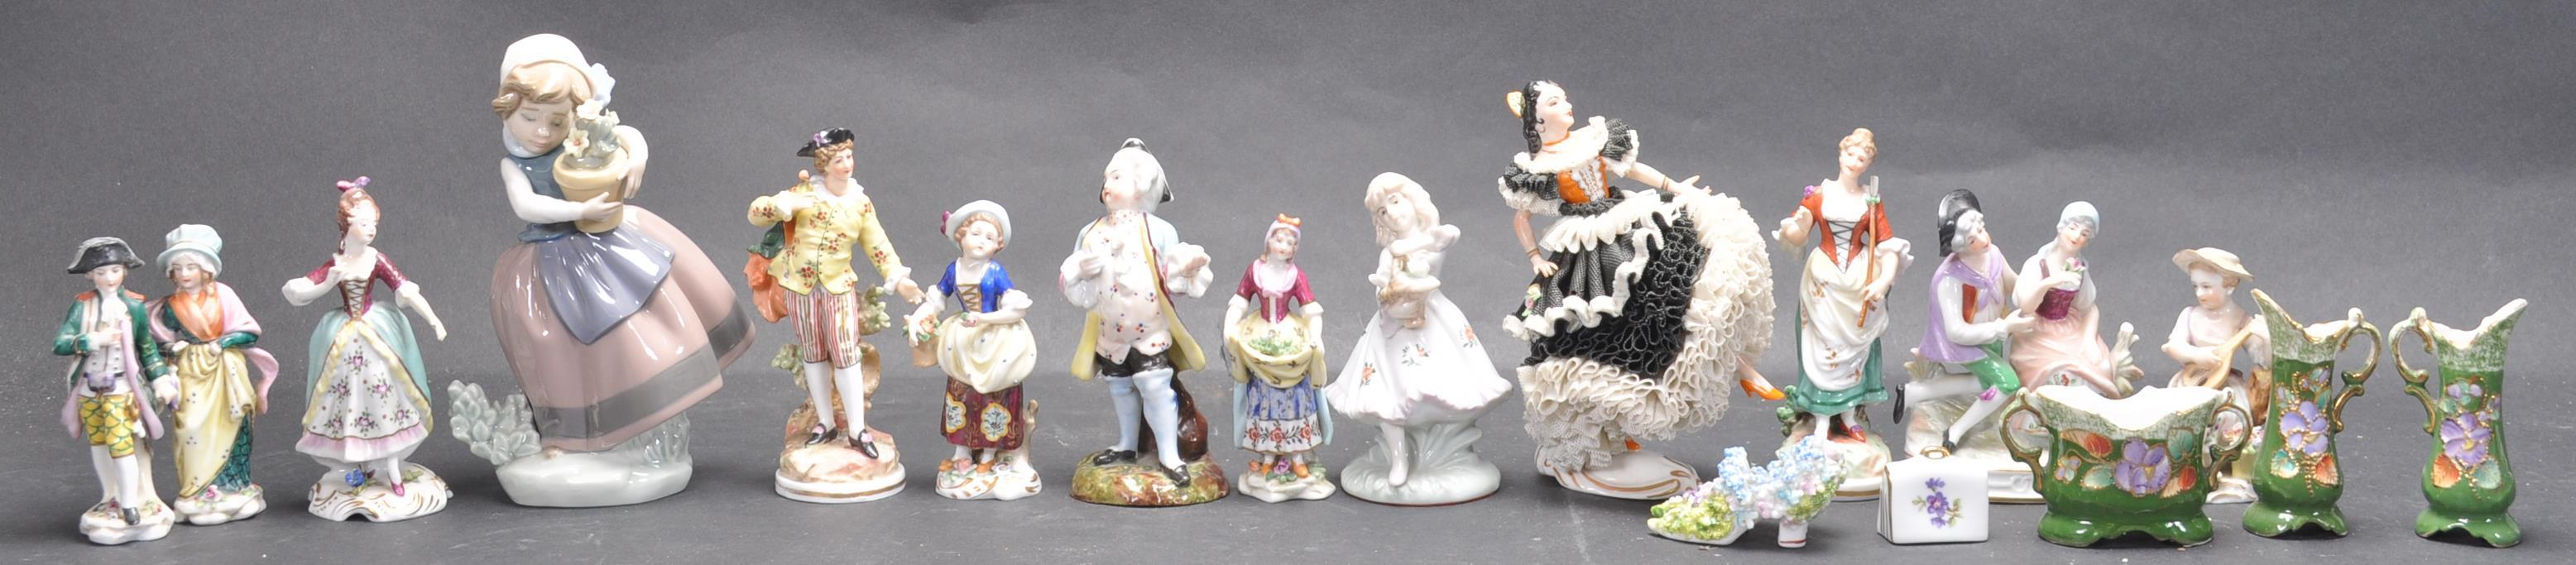 LARGE COLLECTION OF EARLY 20TH CENTURY CONTINENTAL FIGURINES